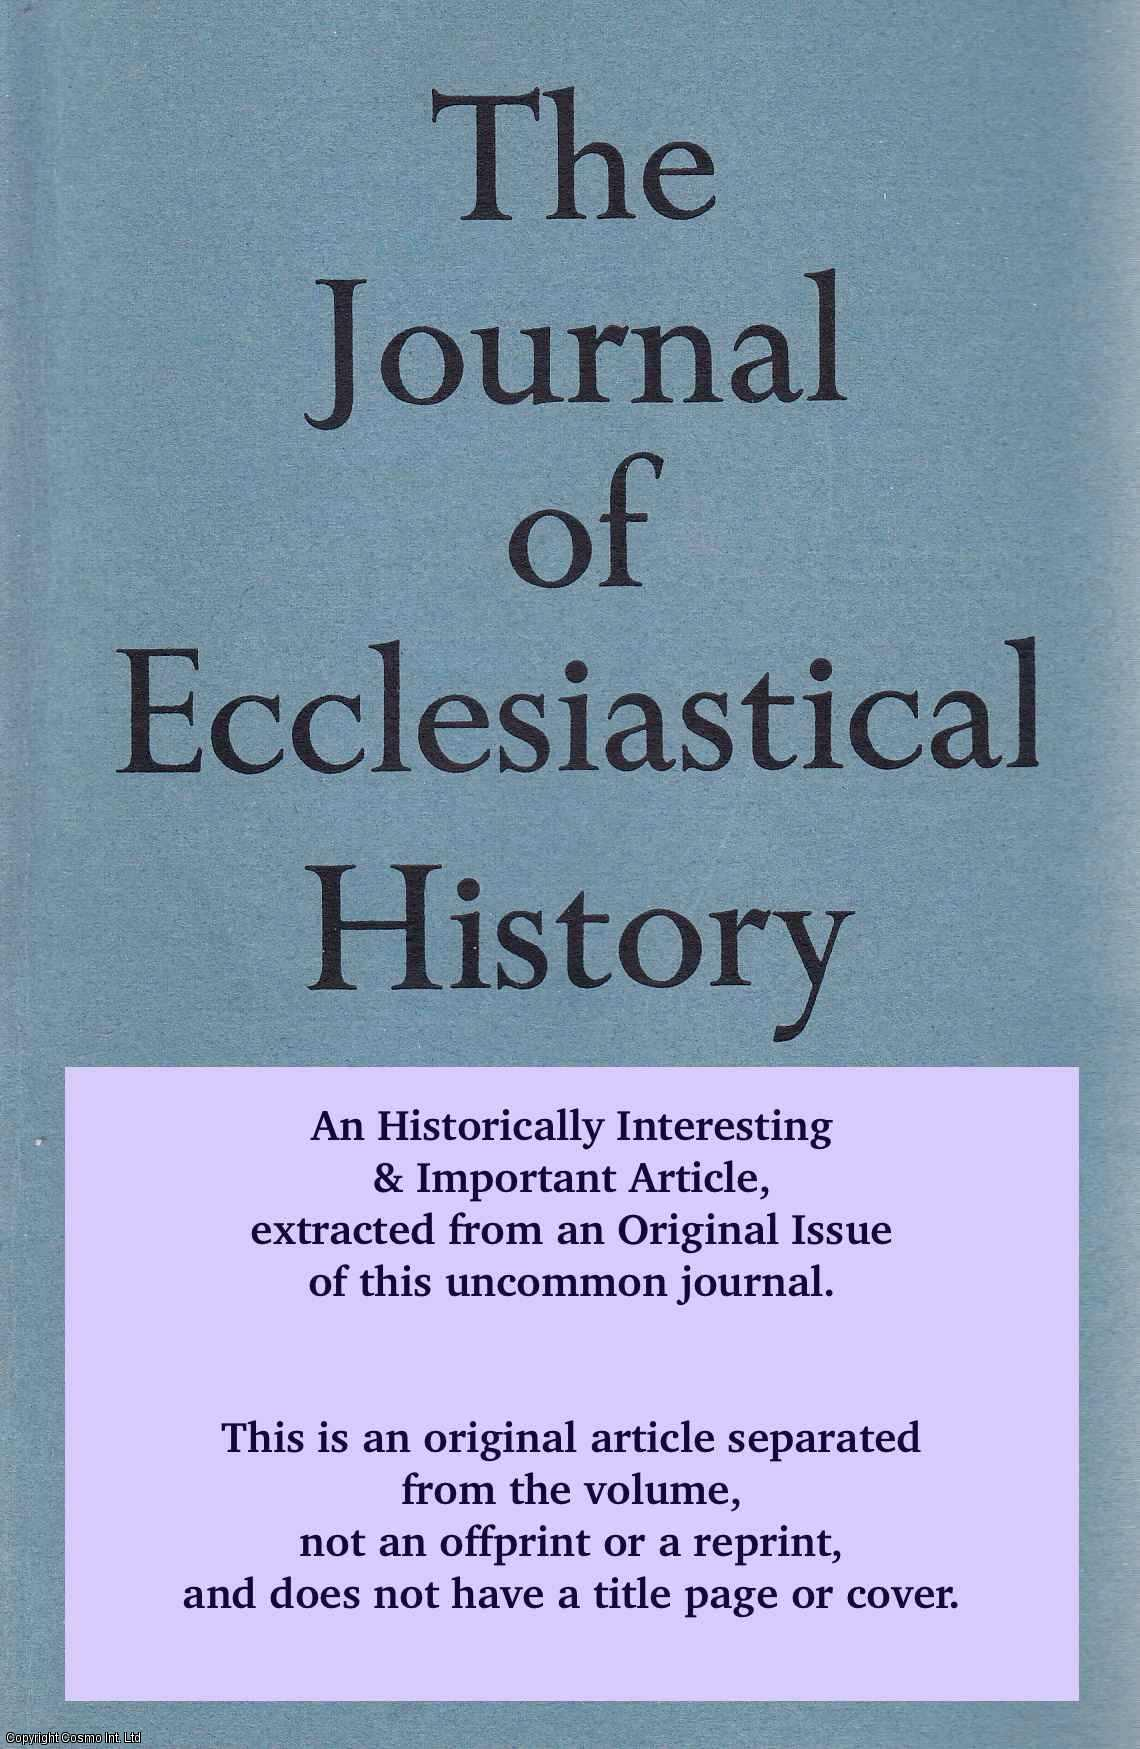 BLACK, MATTHEW - The Festival of Encaenia Ecclesiae in The Ancient Church with Special Reference to Palestine and Syria. An original article from the The Journal of Ecclesiastical History 1954.